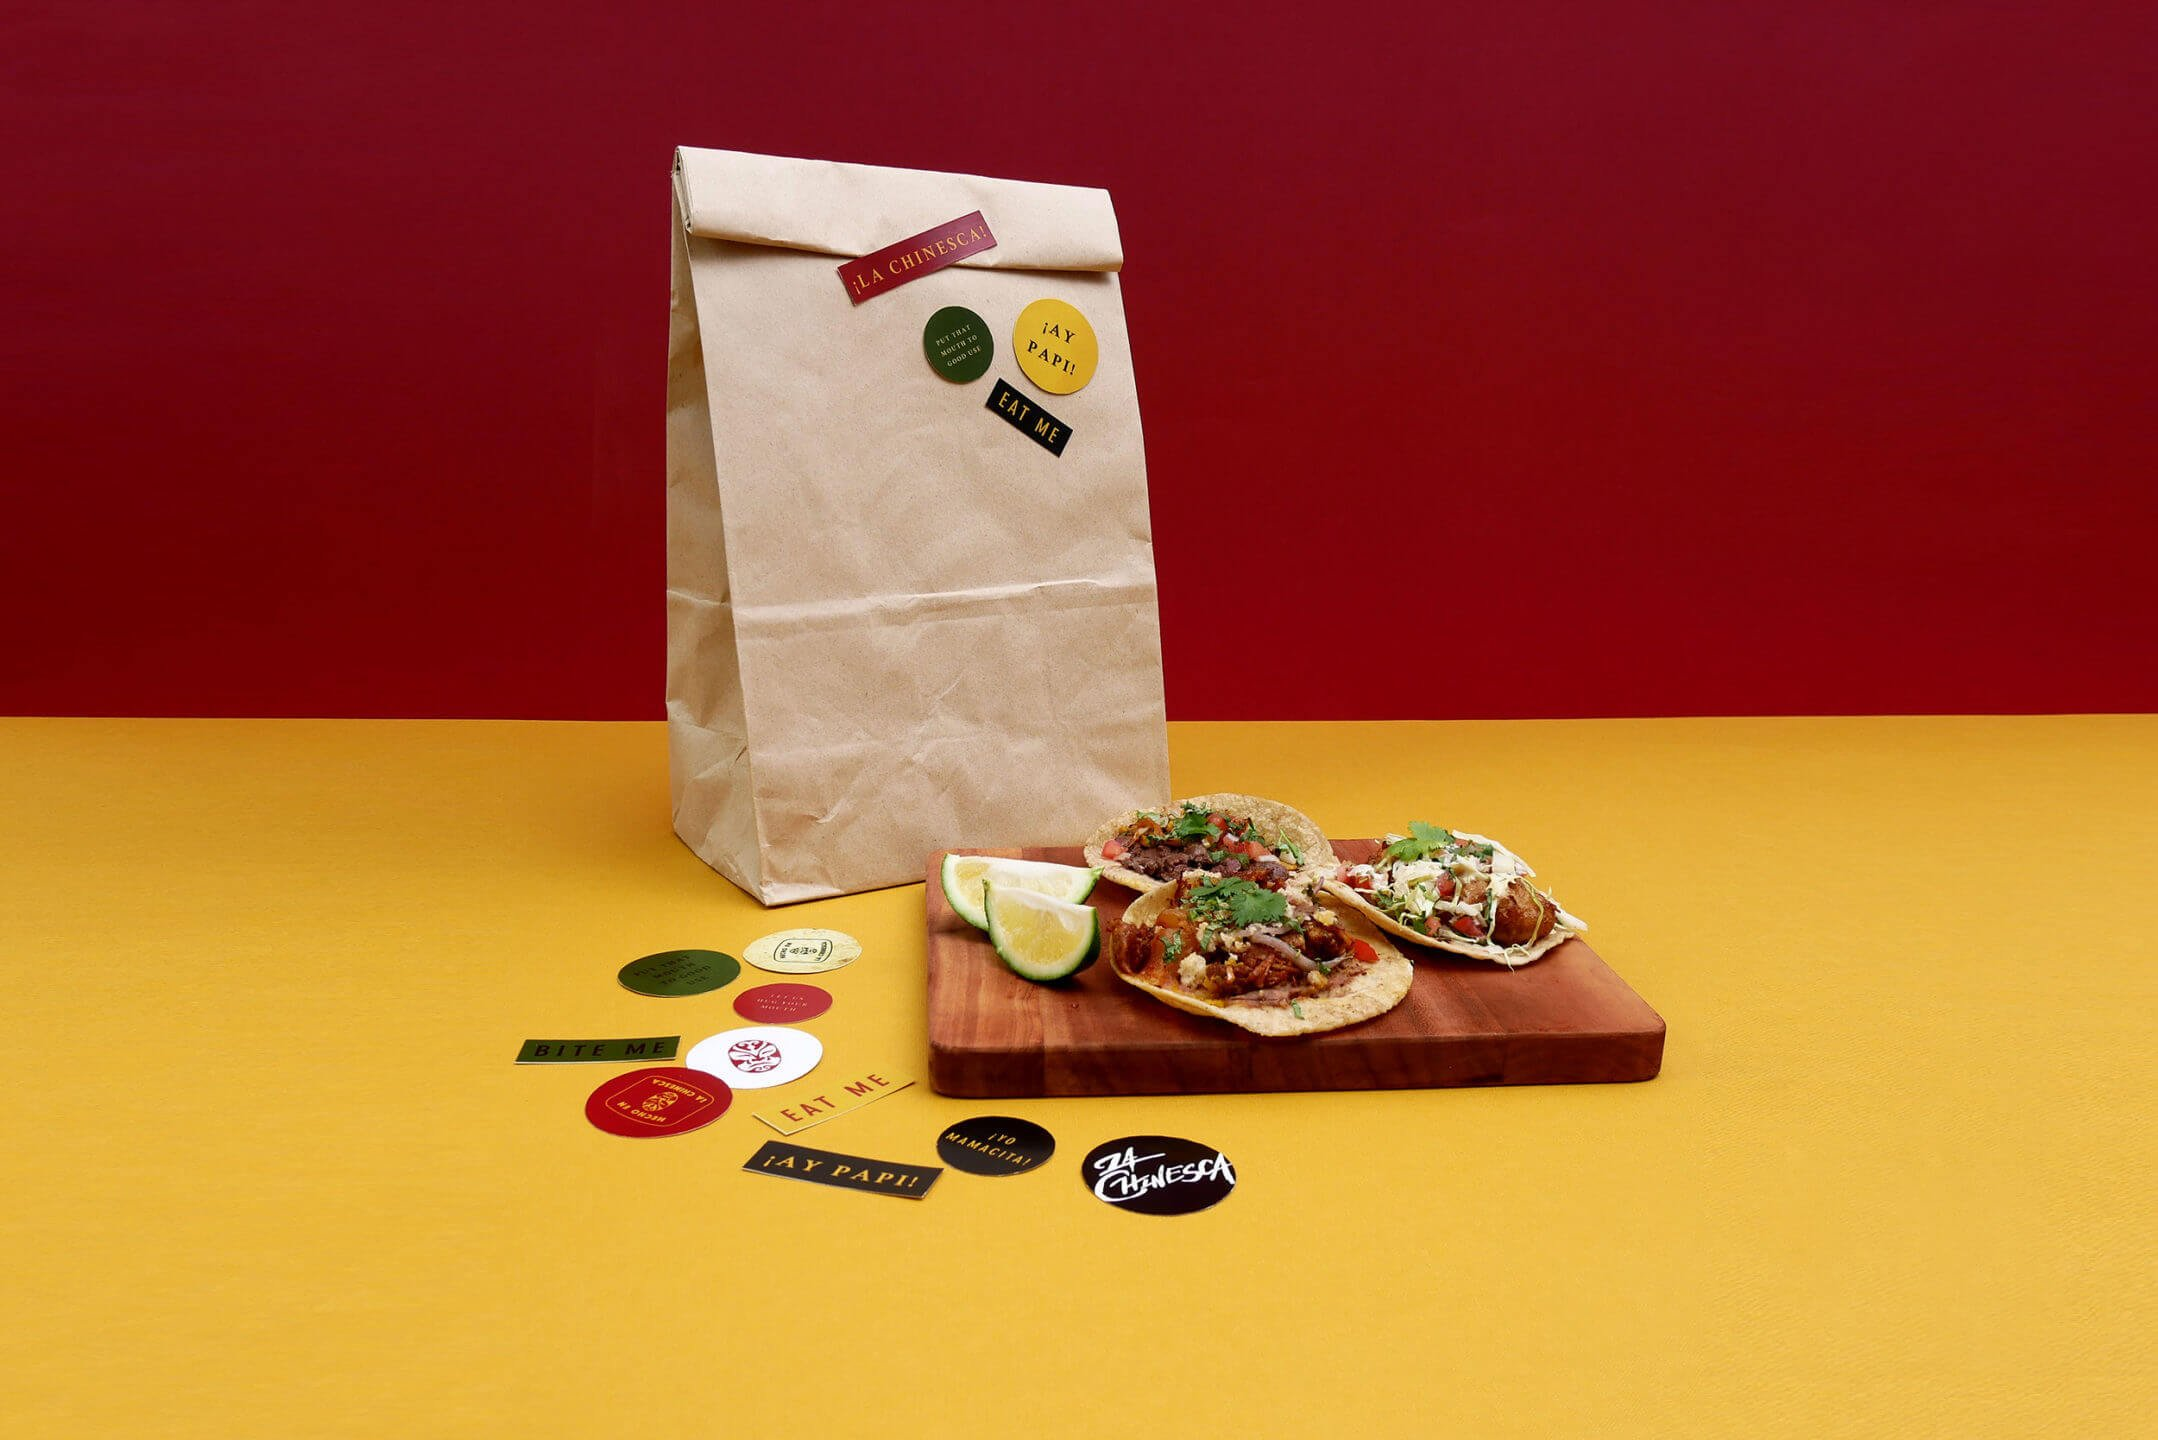 La Chinesca's tacos, stickers, and paper bag packaging